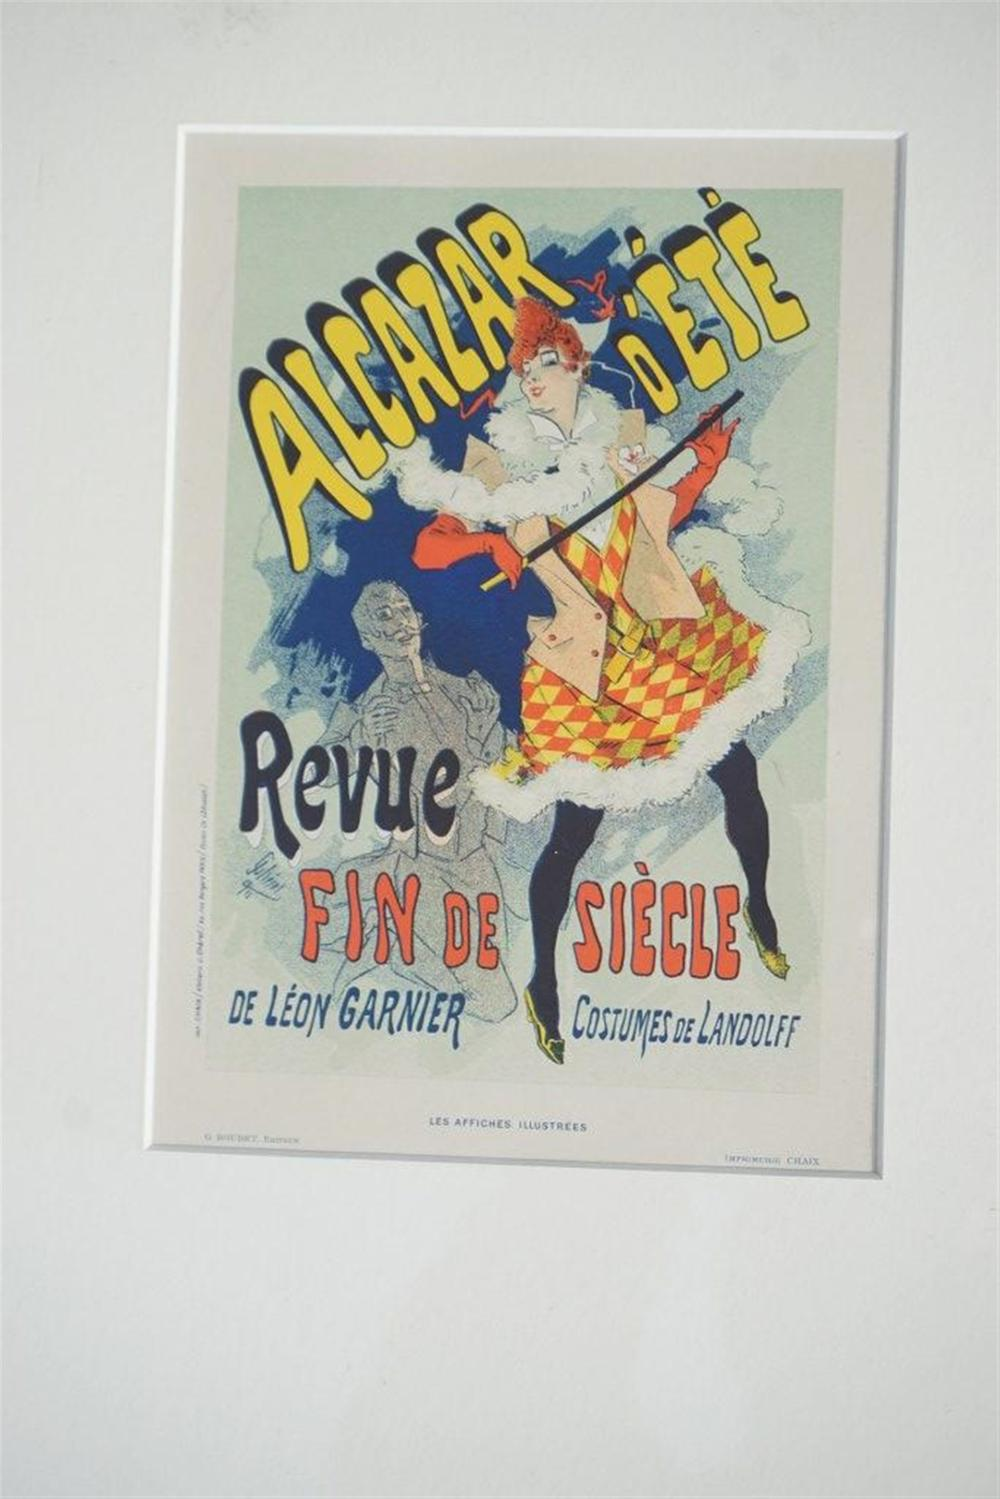 1896 CHERET PARIS FIN DE SIECLE STONE LITHO THEATRE POSTER, EXCELLENT CONDITION, SHRINK WRAPPED AND MATTED, FROM RETIRED DEALERS COLLECTION.